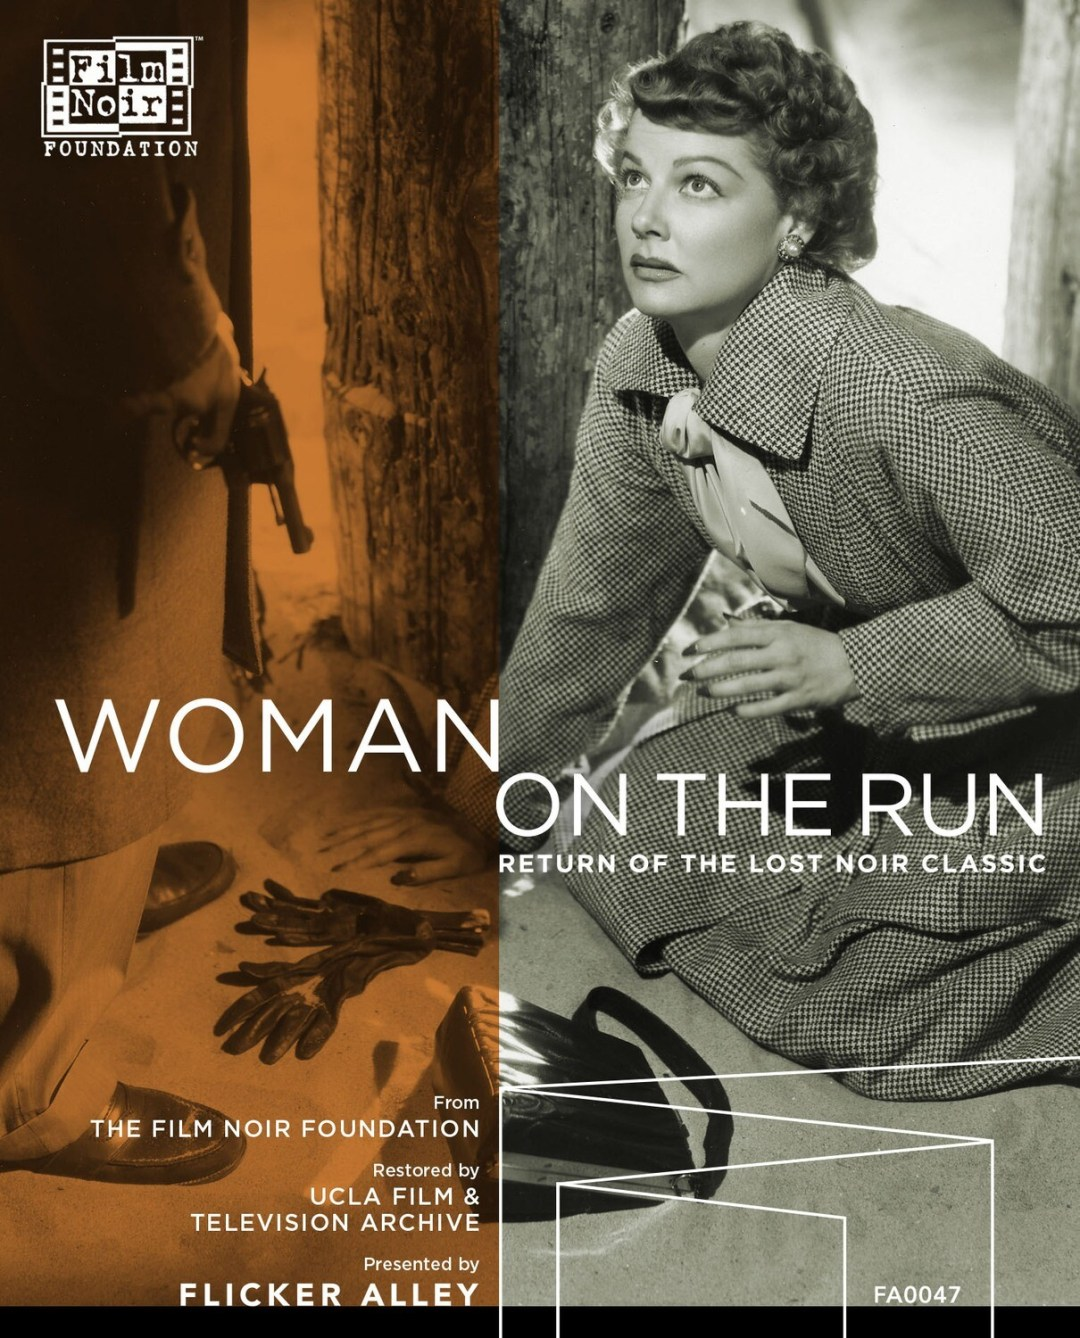 WOMAN ON THE RUN (1950) Fully restored on Blu-ray & DVD!